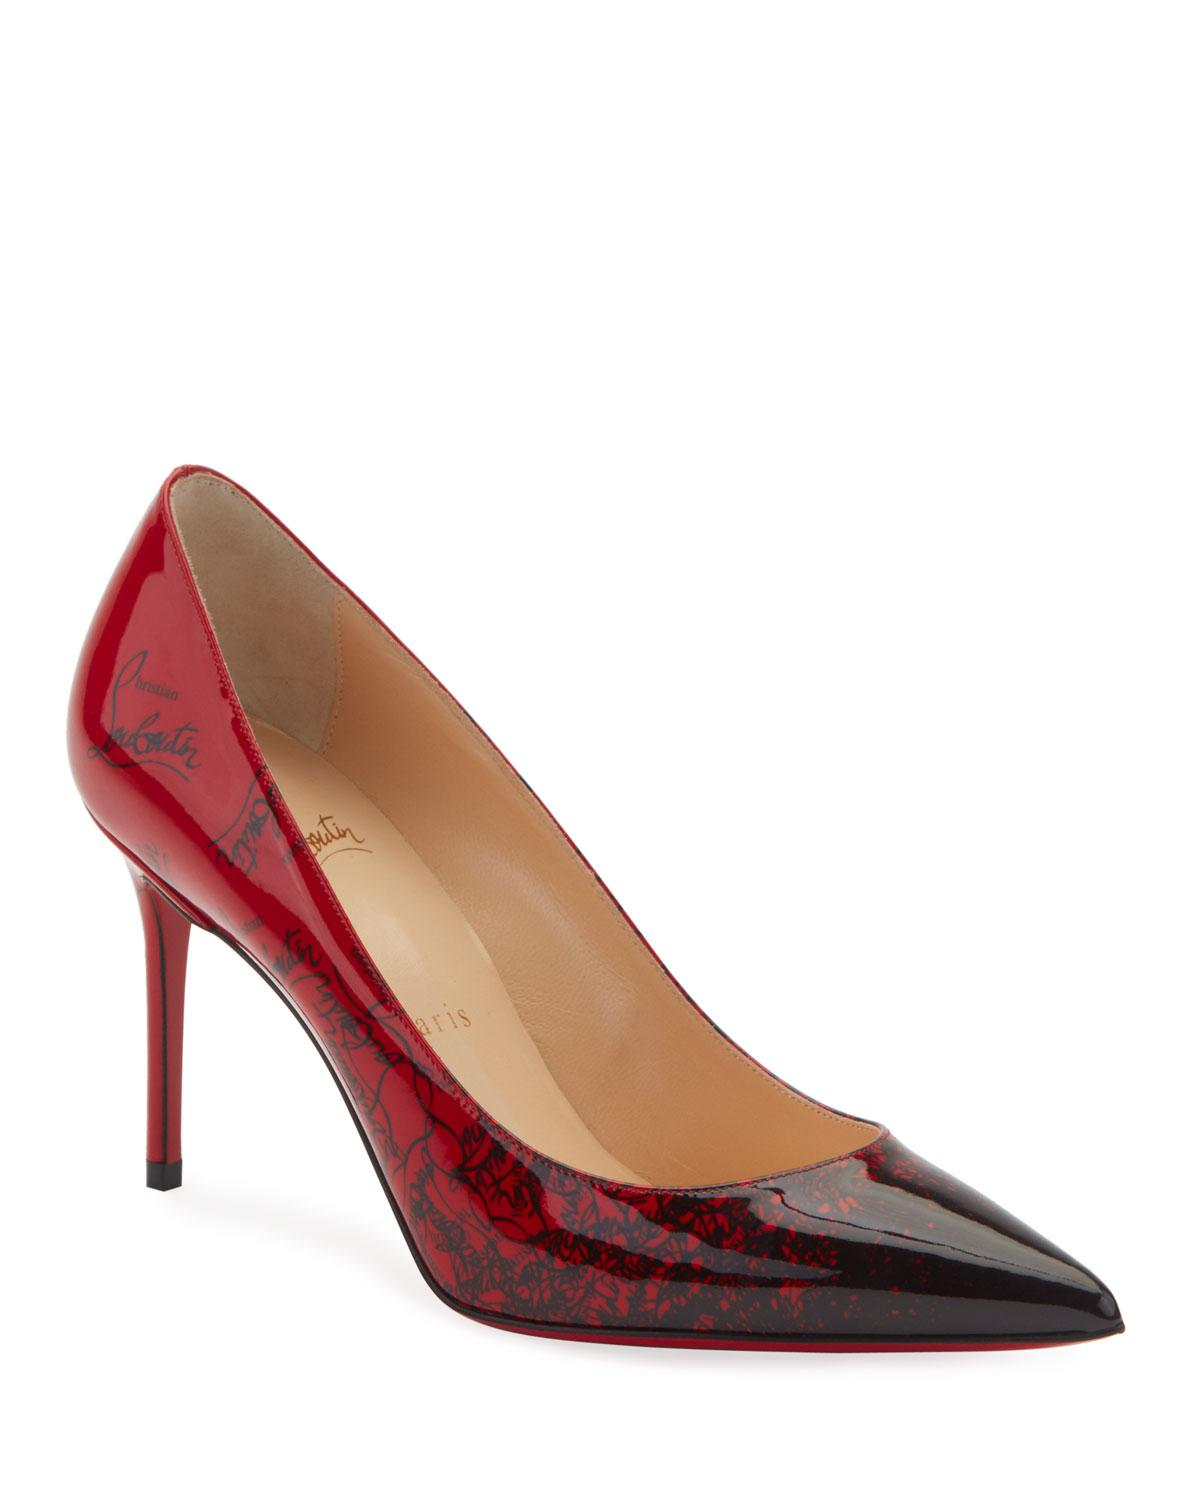 outlet store 3cde1 ed19e Lyst - Christian Louboutin Decollete 554 Mid-heel Patent ...